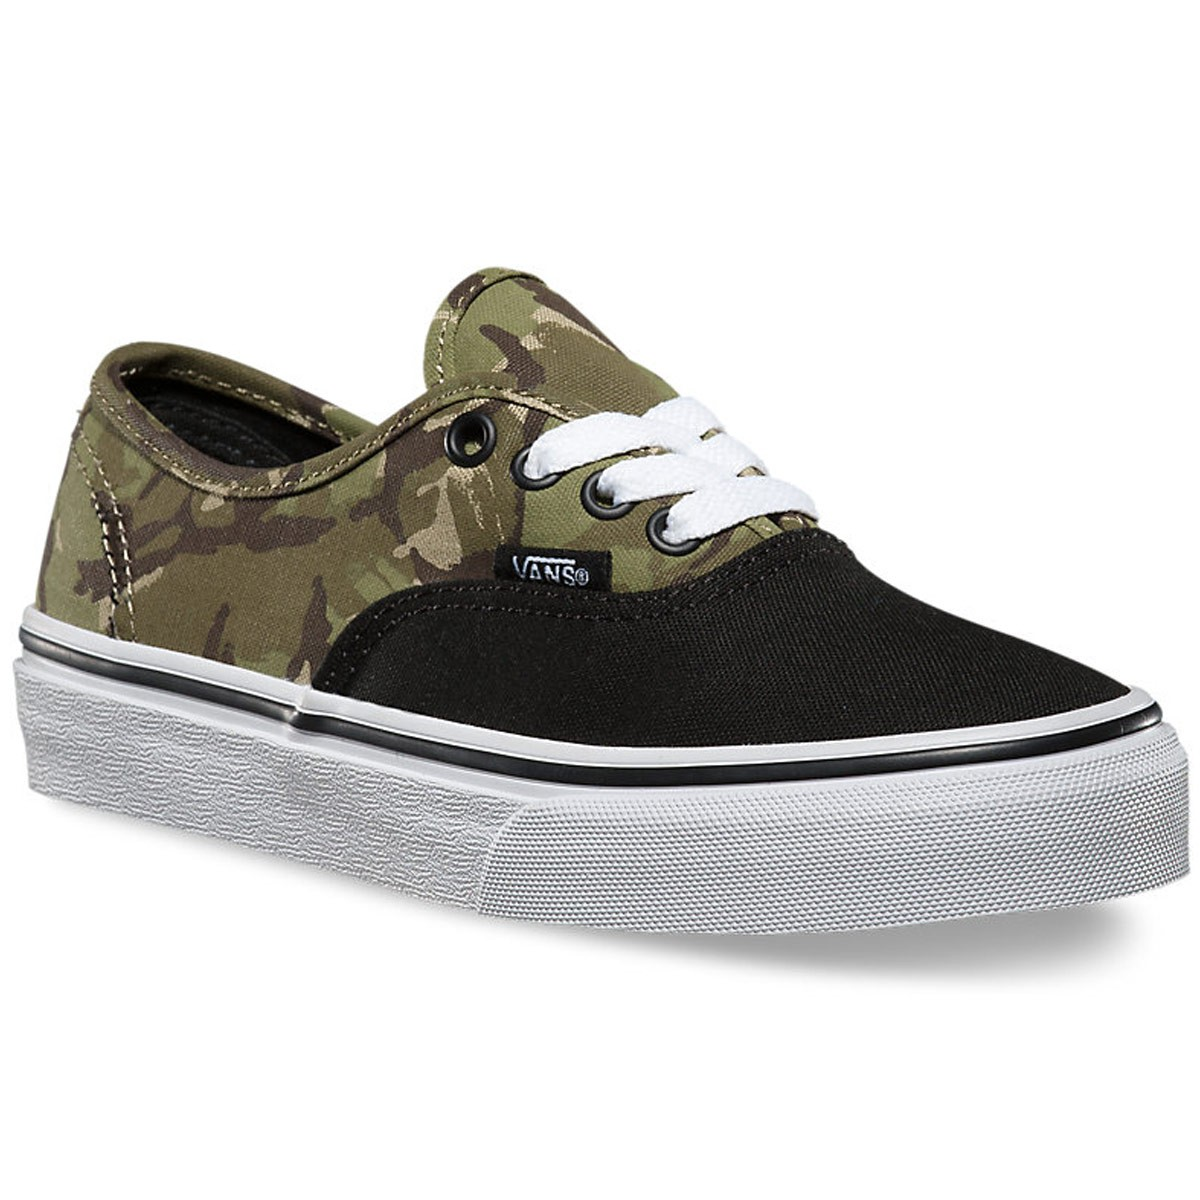 Vans Chinos Shoes